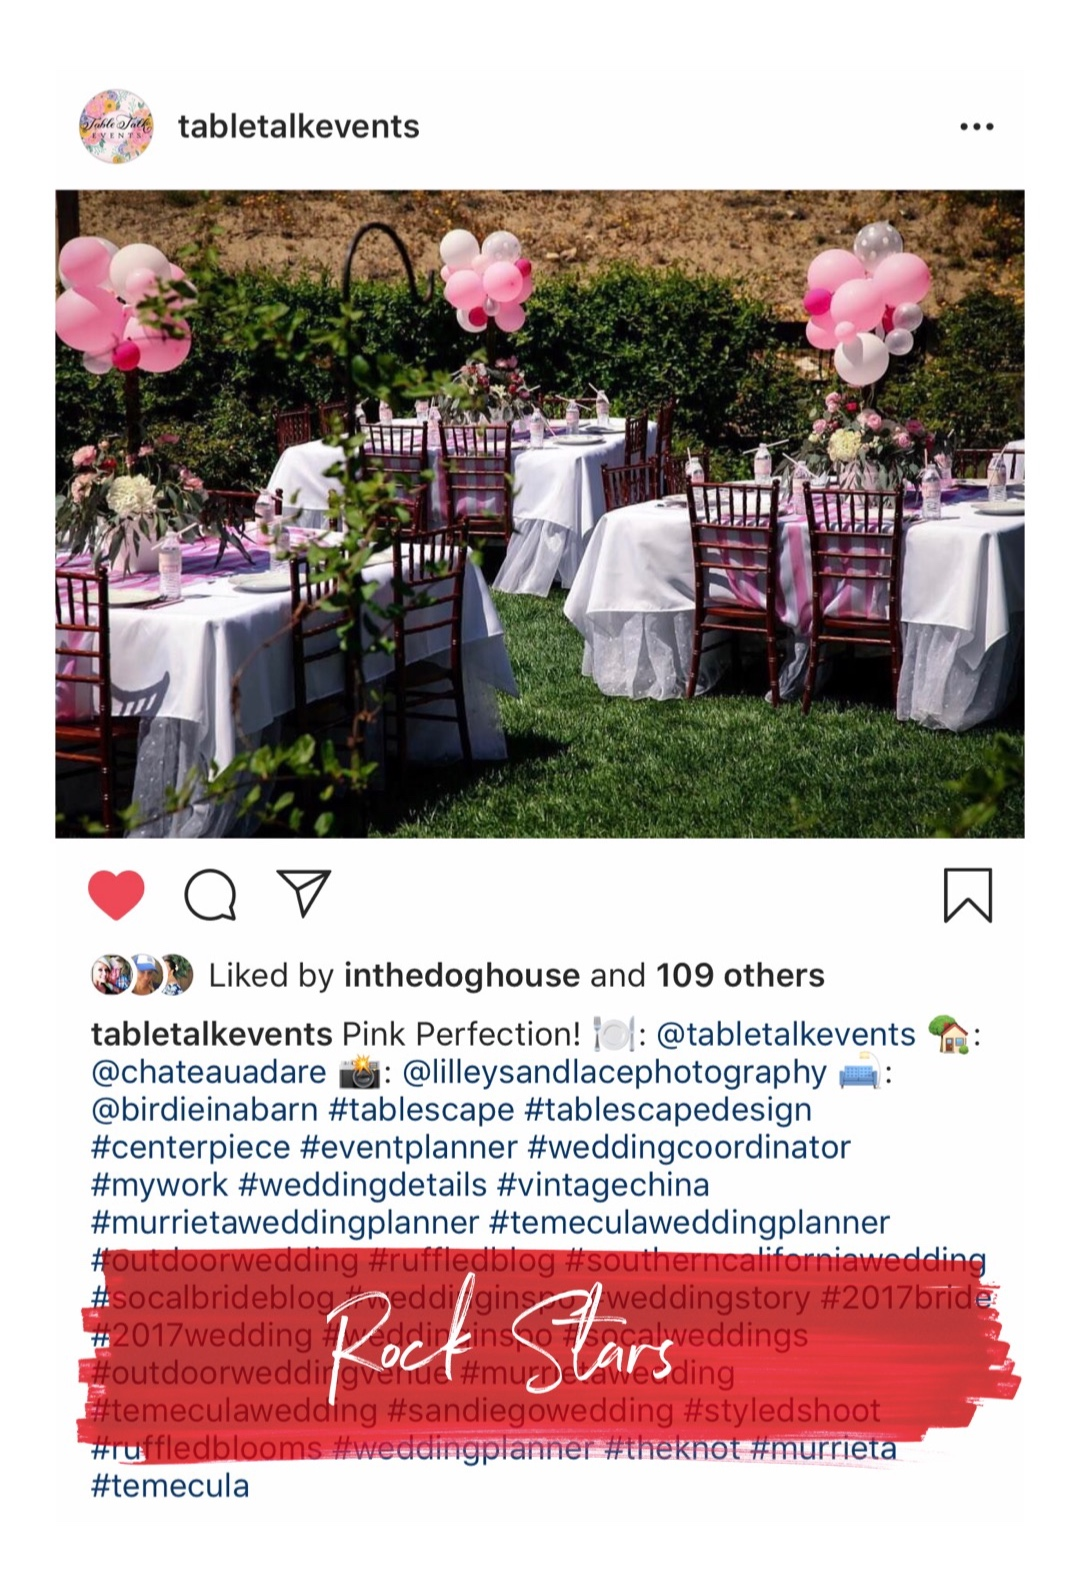 Table Talk Events is a premiere wedding and party planning company. It is located in the Temecula Valley, at Murrieta.